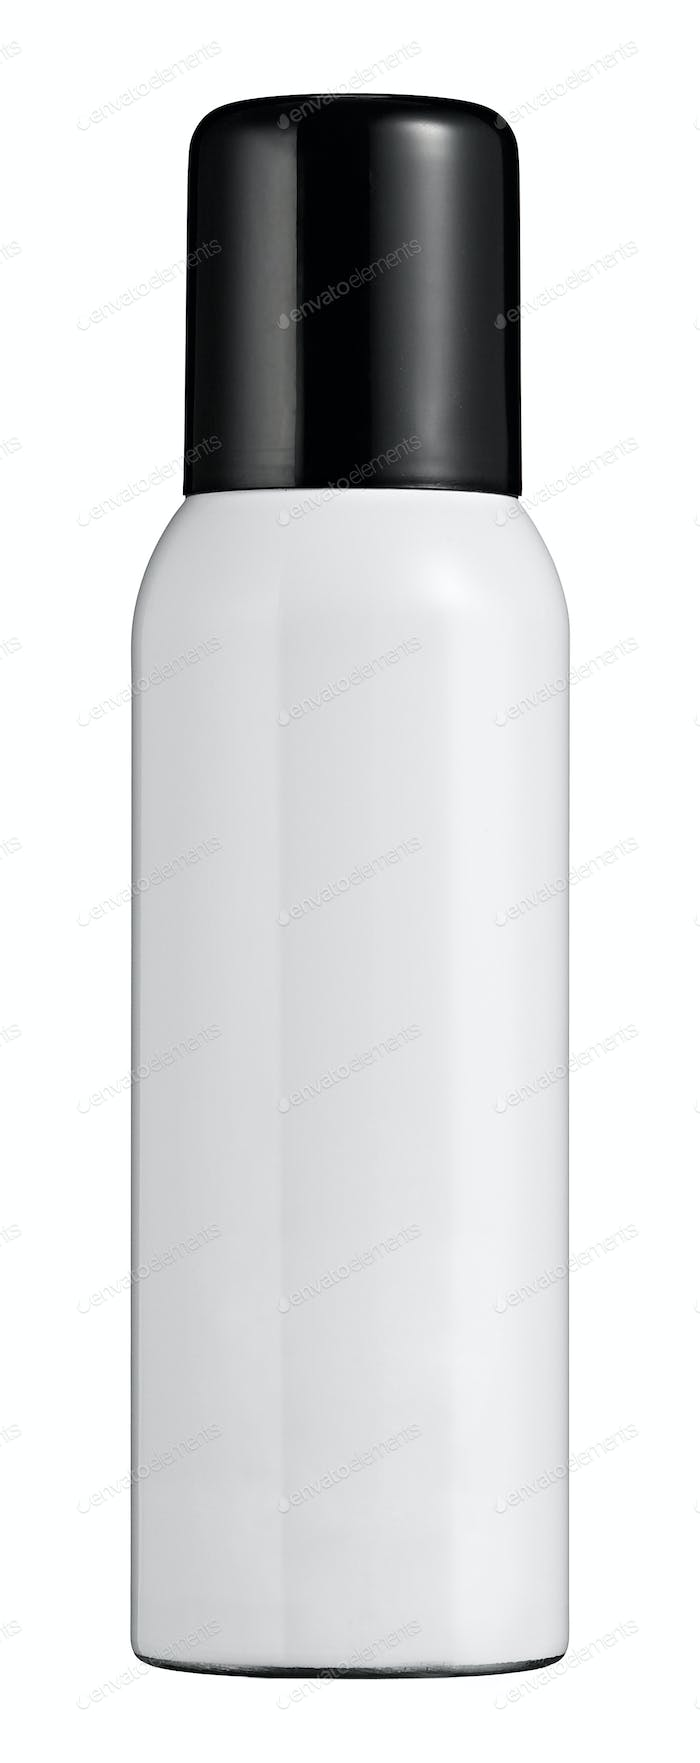 Single white lotion or makeup bottle